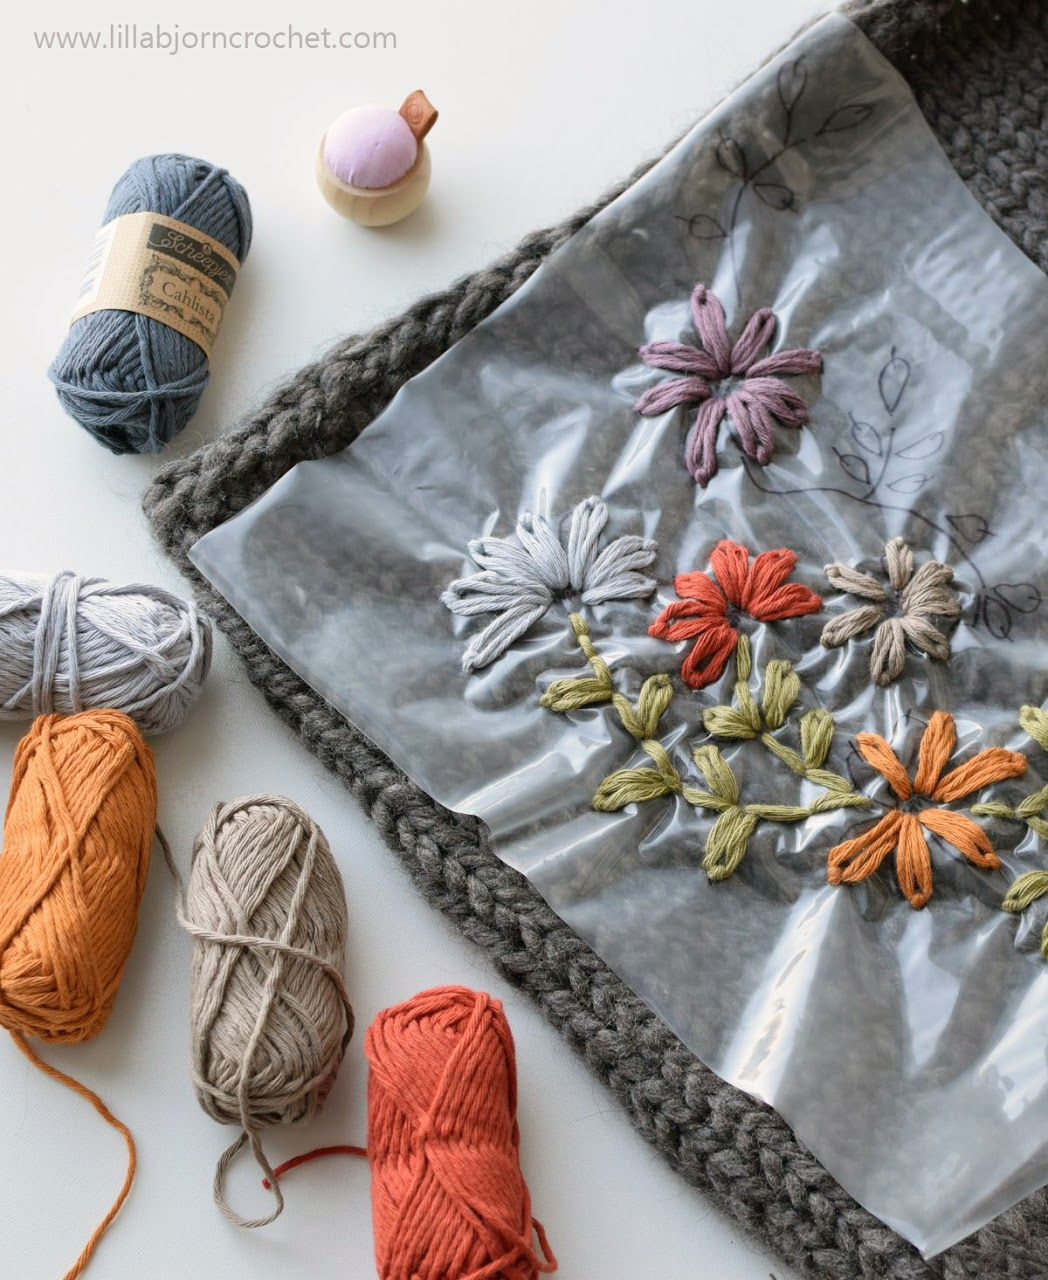 How to embroider on knit and crochet